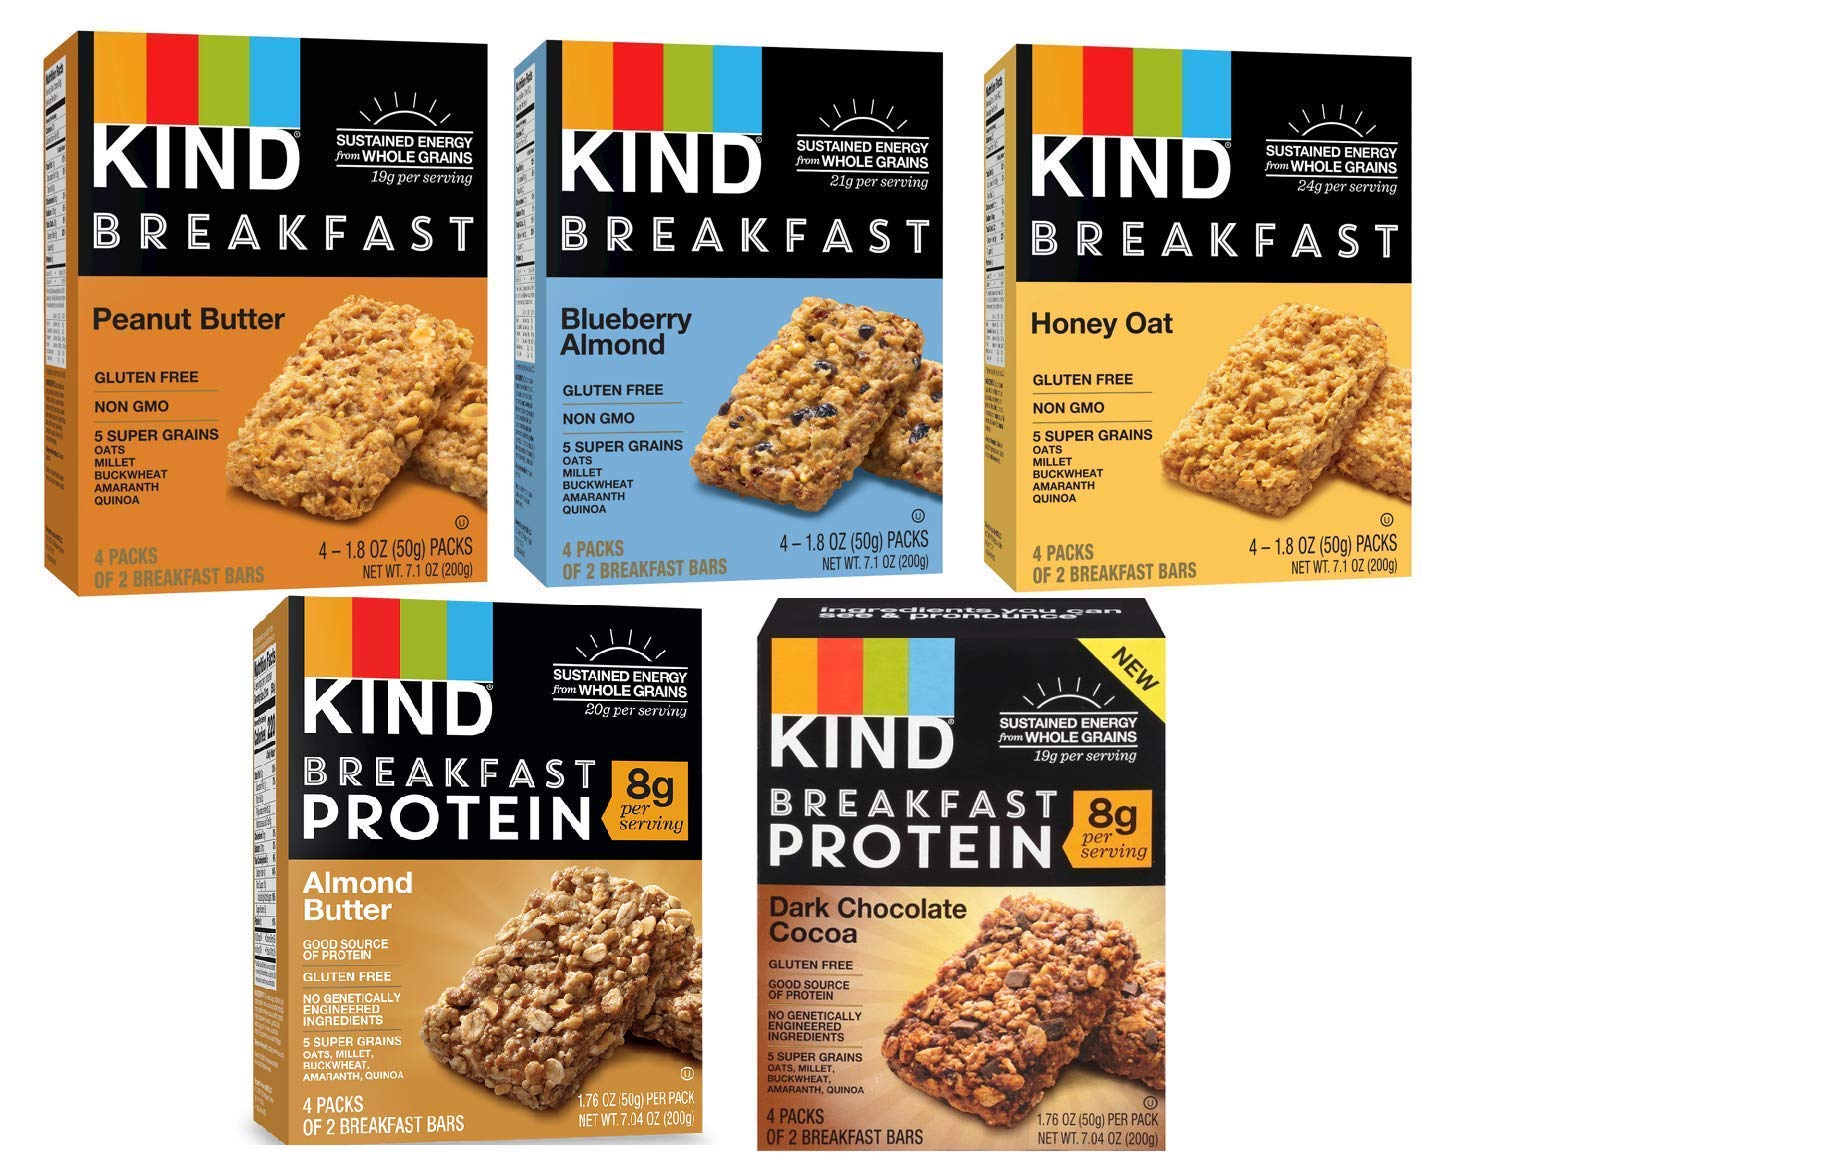 Kind, Breakfast Bars, Variety 5 Box (8ct ea): Dark Chocolate Cocoa, Honey Oat, Peanut Butter, Almond Butter, Peanut Butter Banana Maple Cinnamon, Blueberry Almond by KIND